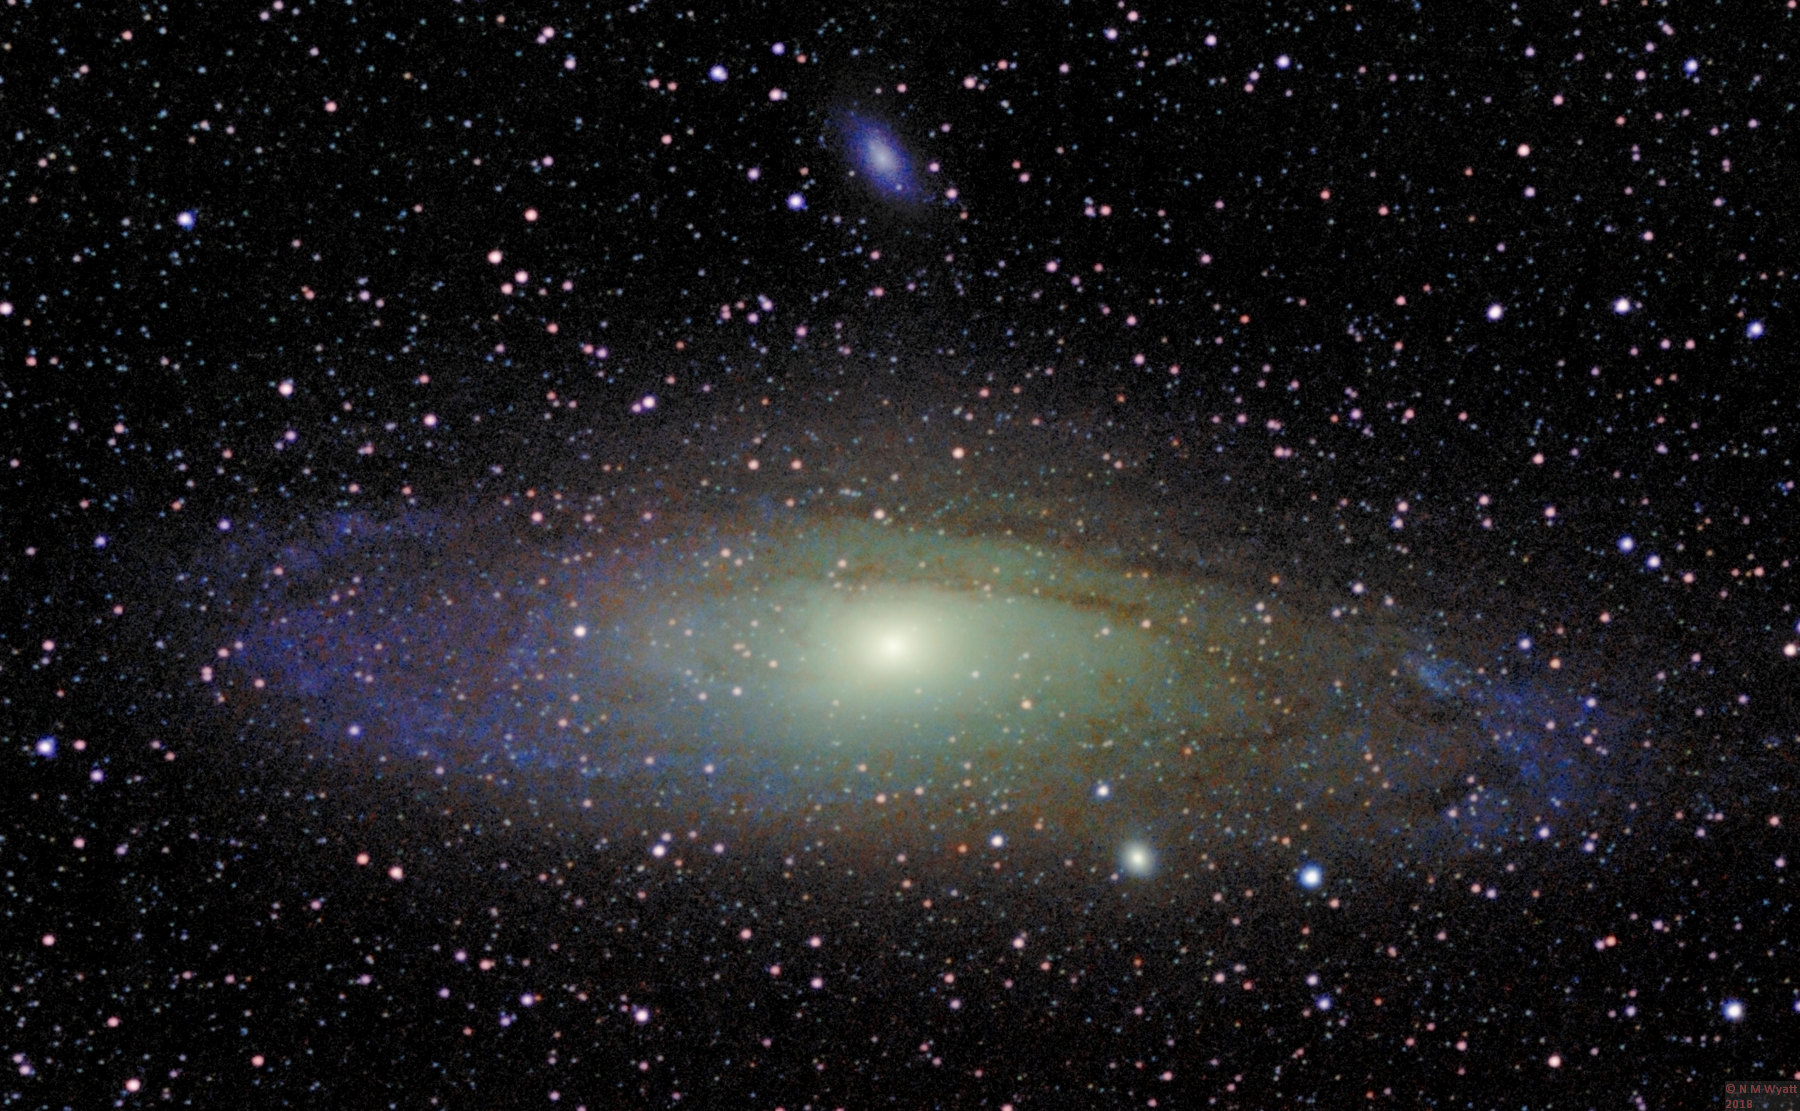 M31 The Great Nebula in Andromeda